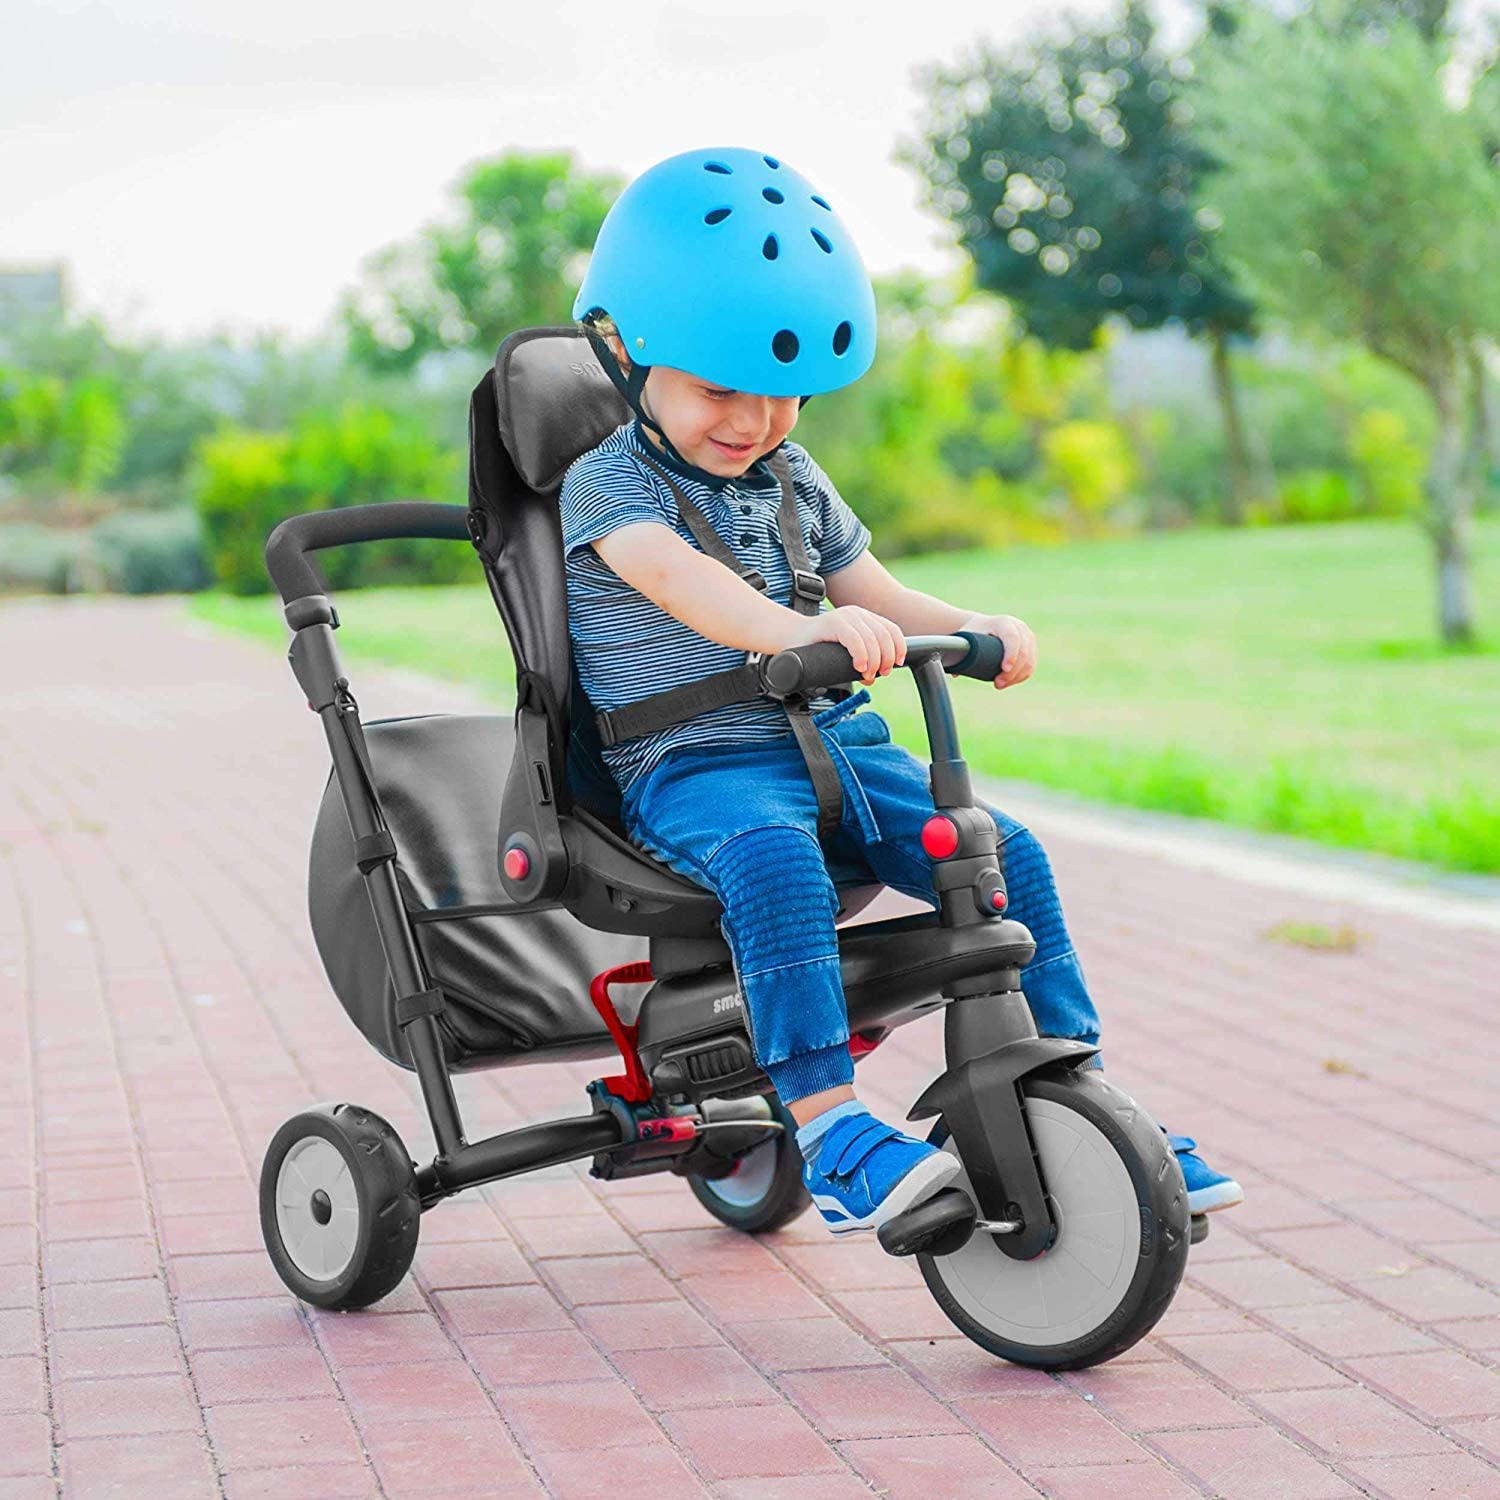 SmarTrike STR7 7 in 1 Folding Trike | Urban Black